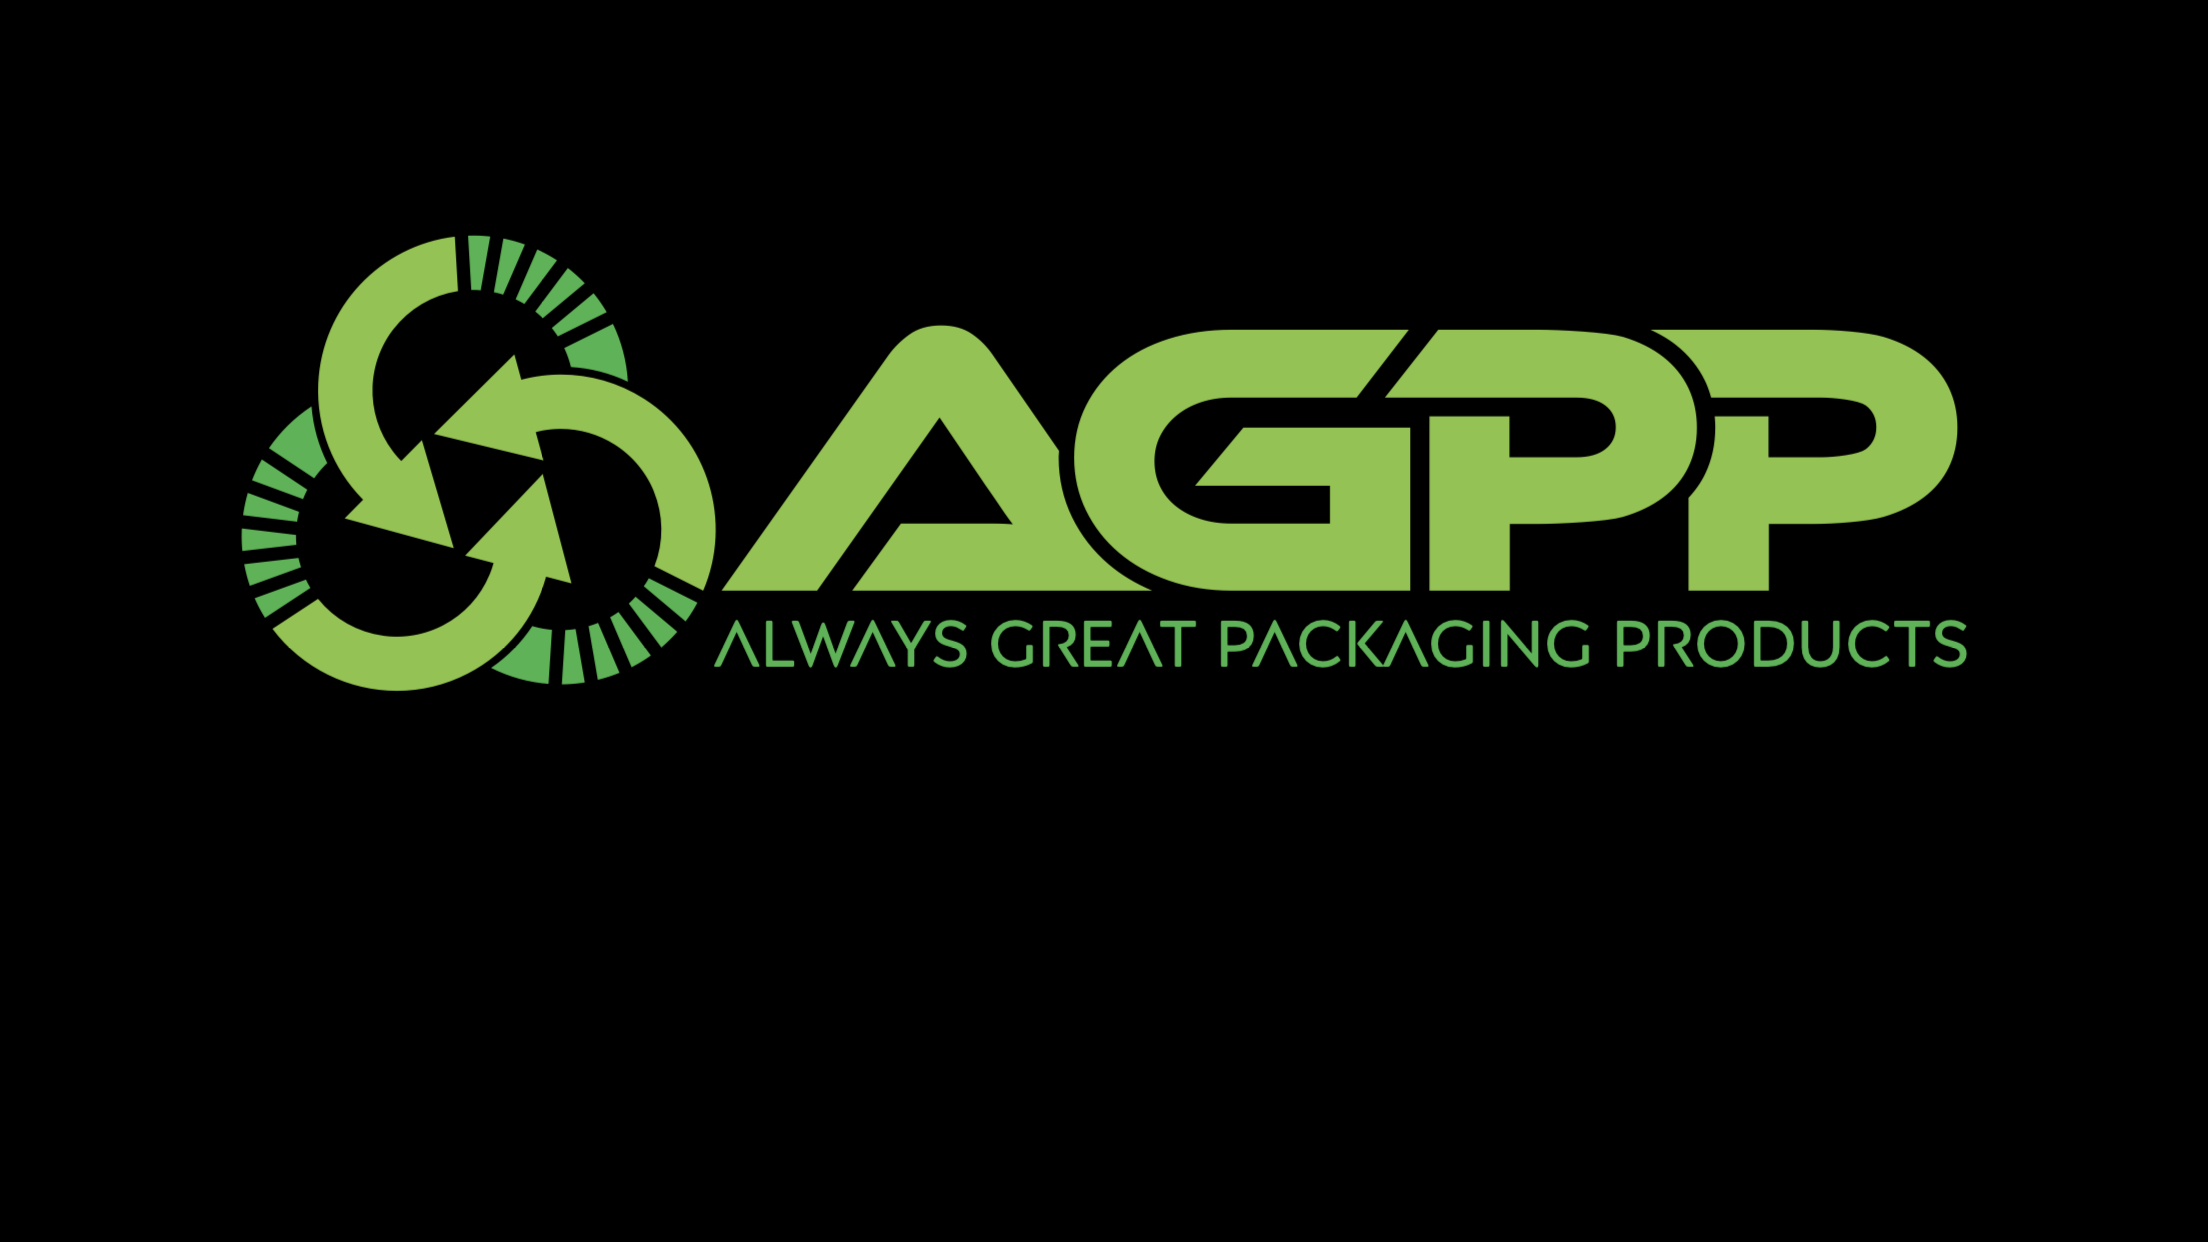 Always Great Packaging Products - AGPP LLC